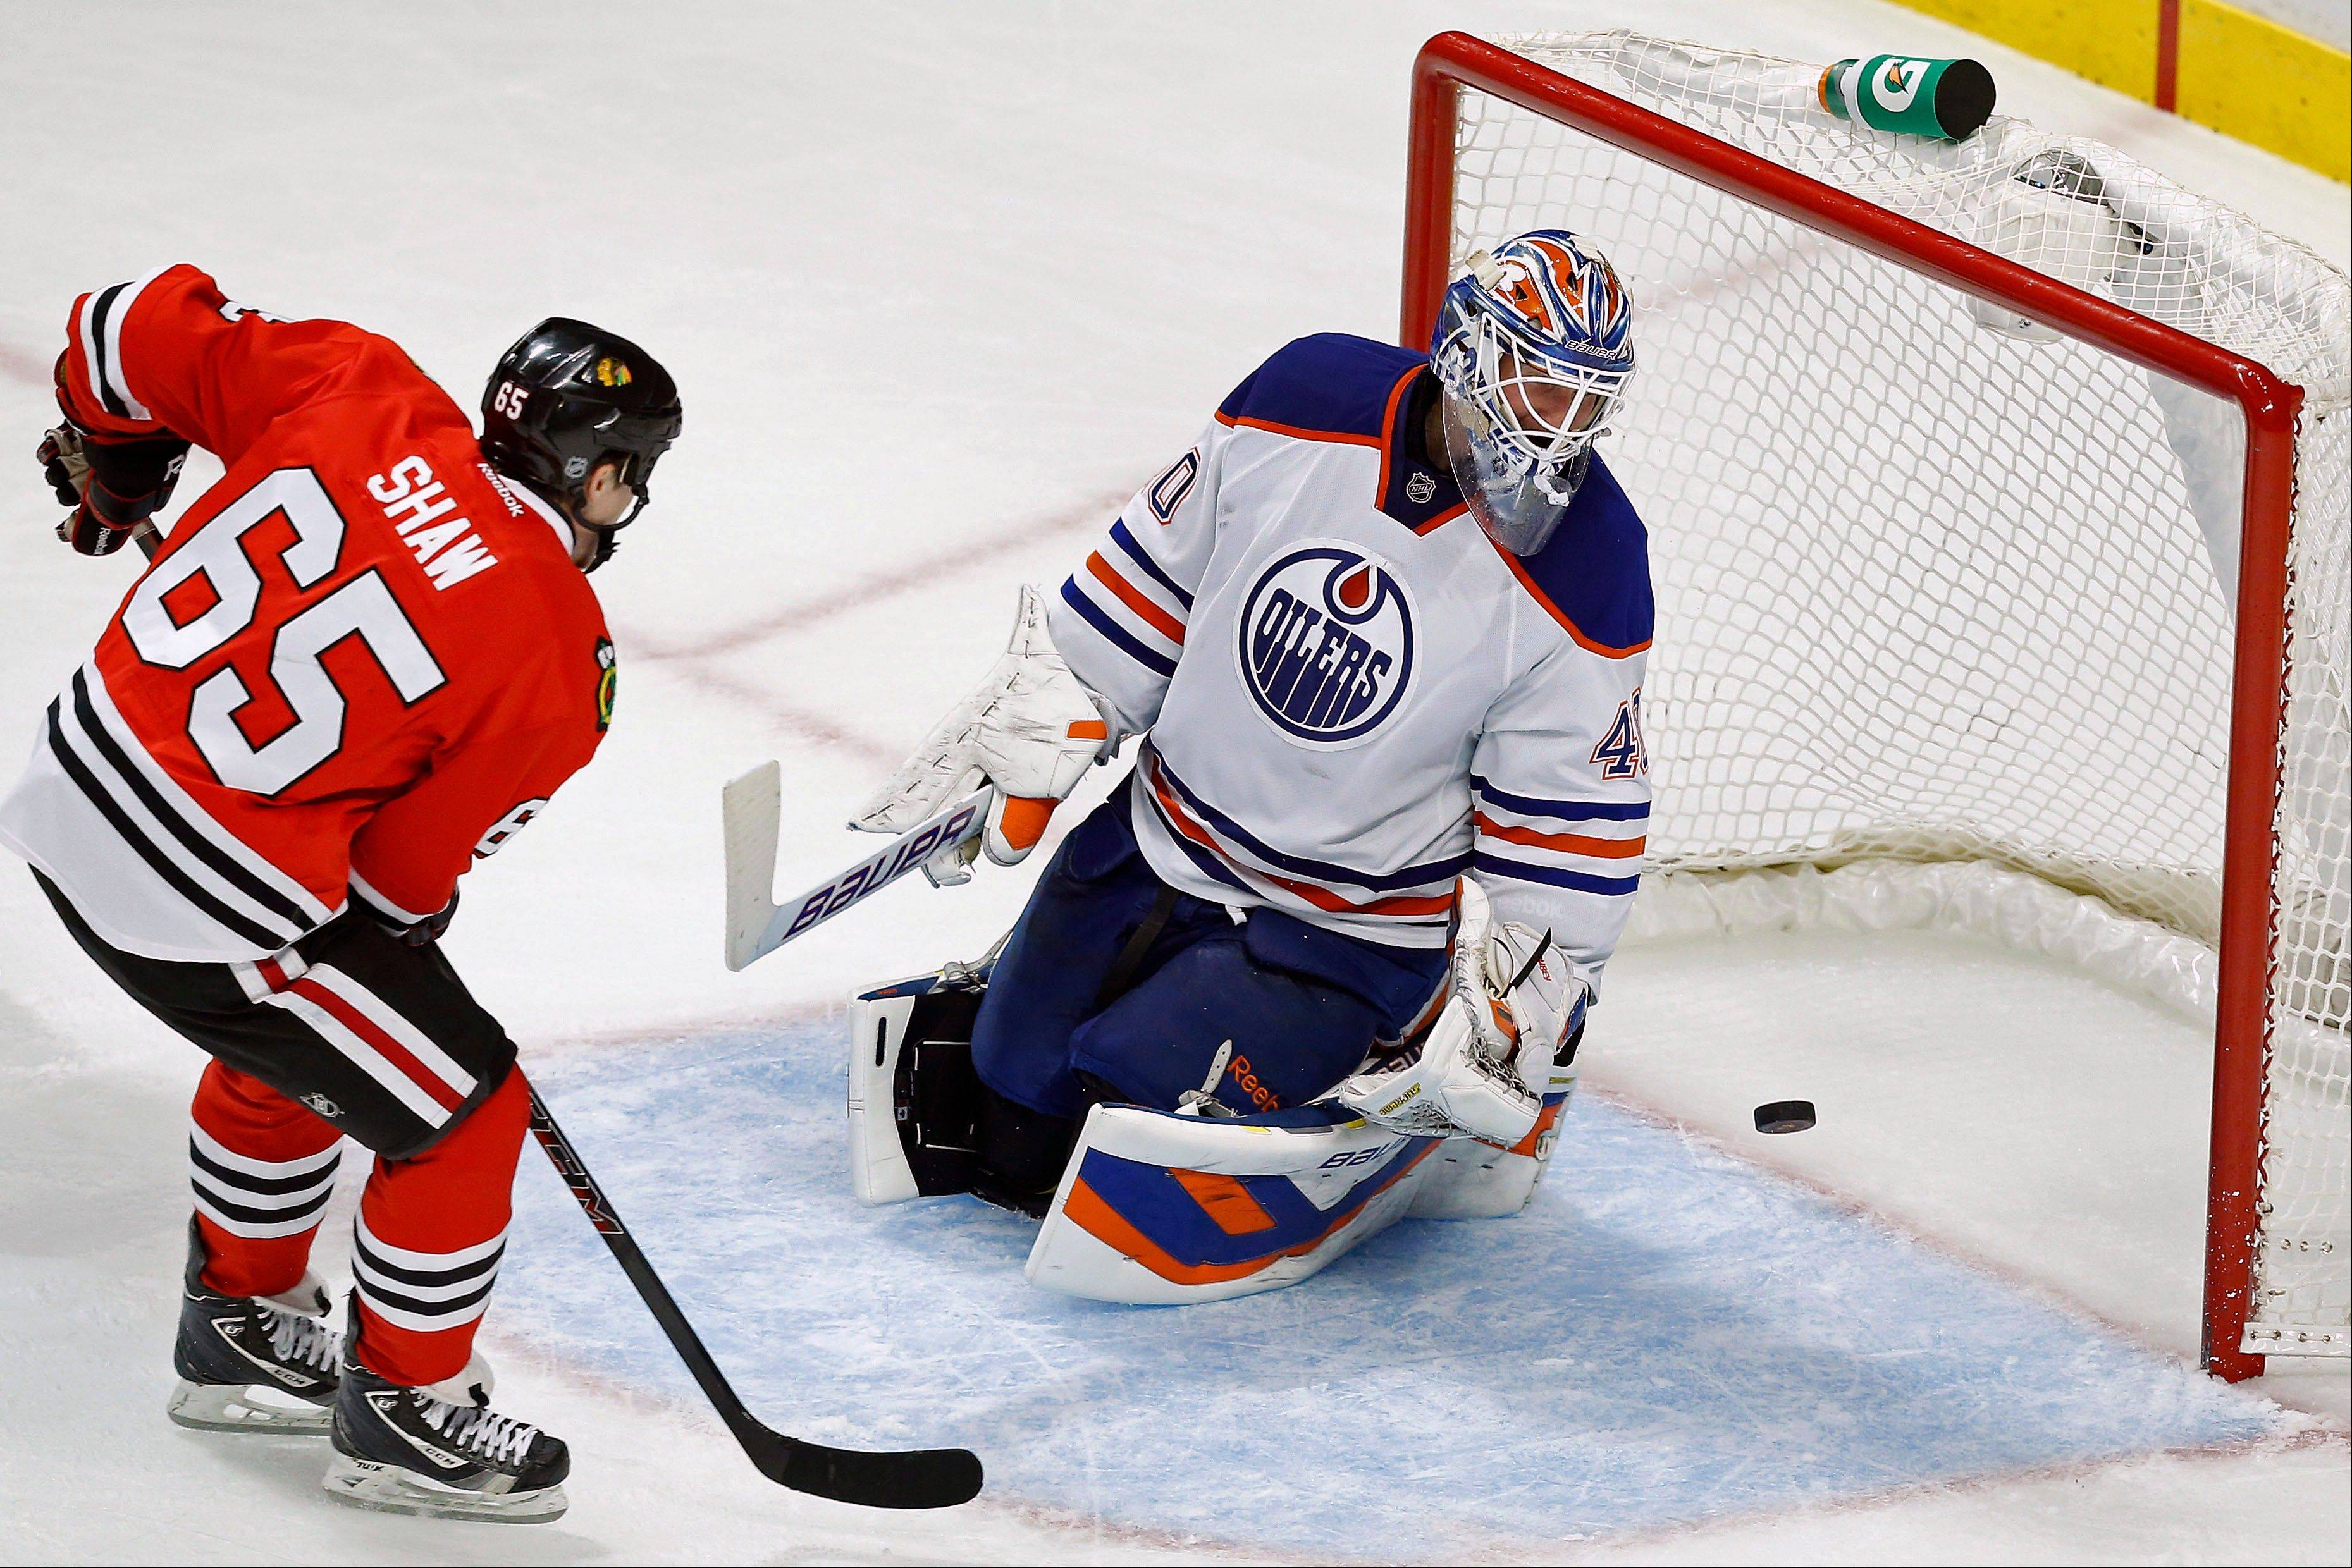 Blackhawks center Andrew Shaw scores a goal past Edmonton Oilers goalie Devan Dubnyk (40) during the second period of the NHL hockey game on Sunday, Nov. 10, 2013, in Chicago.